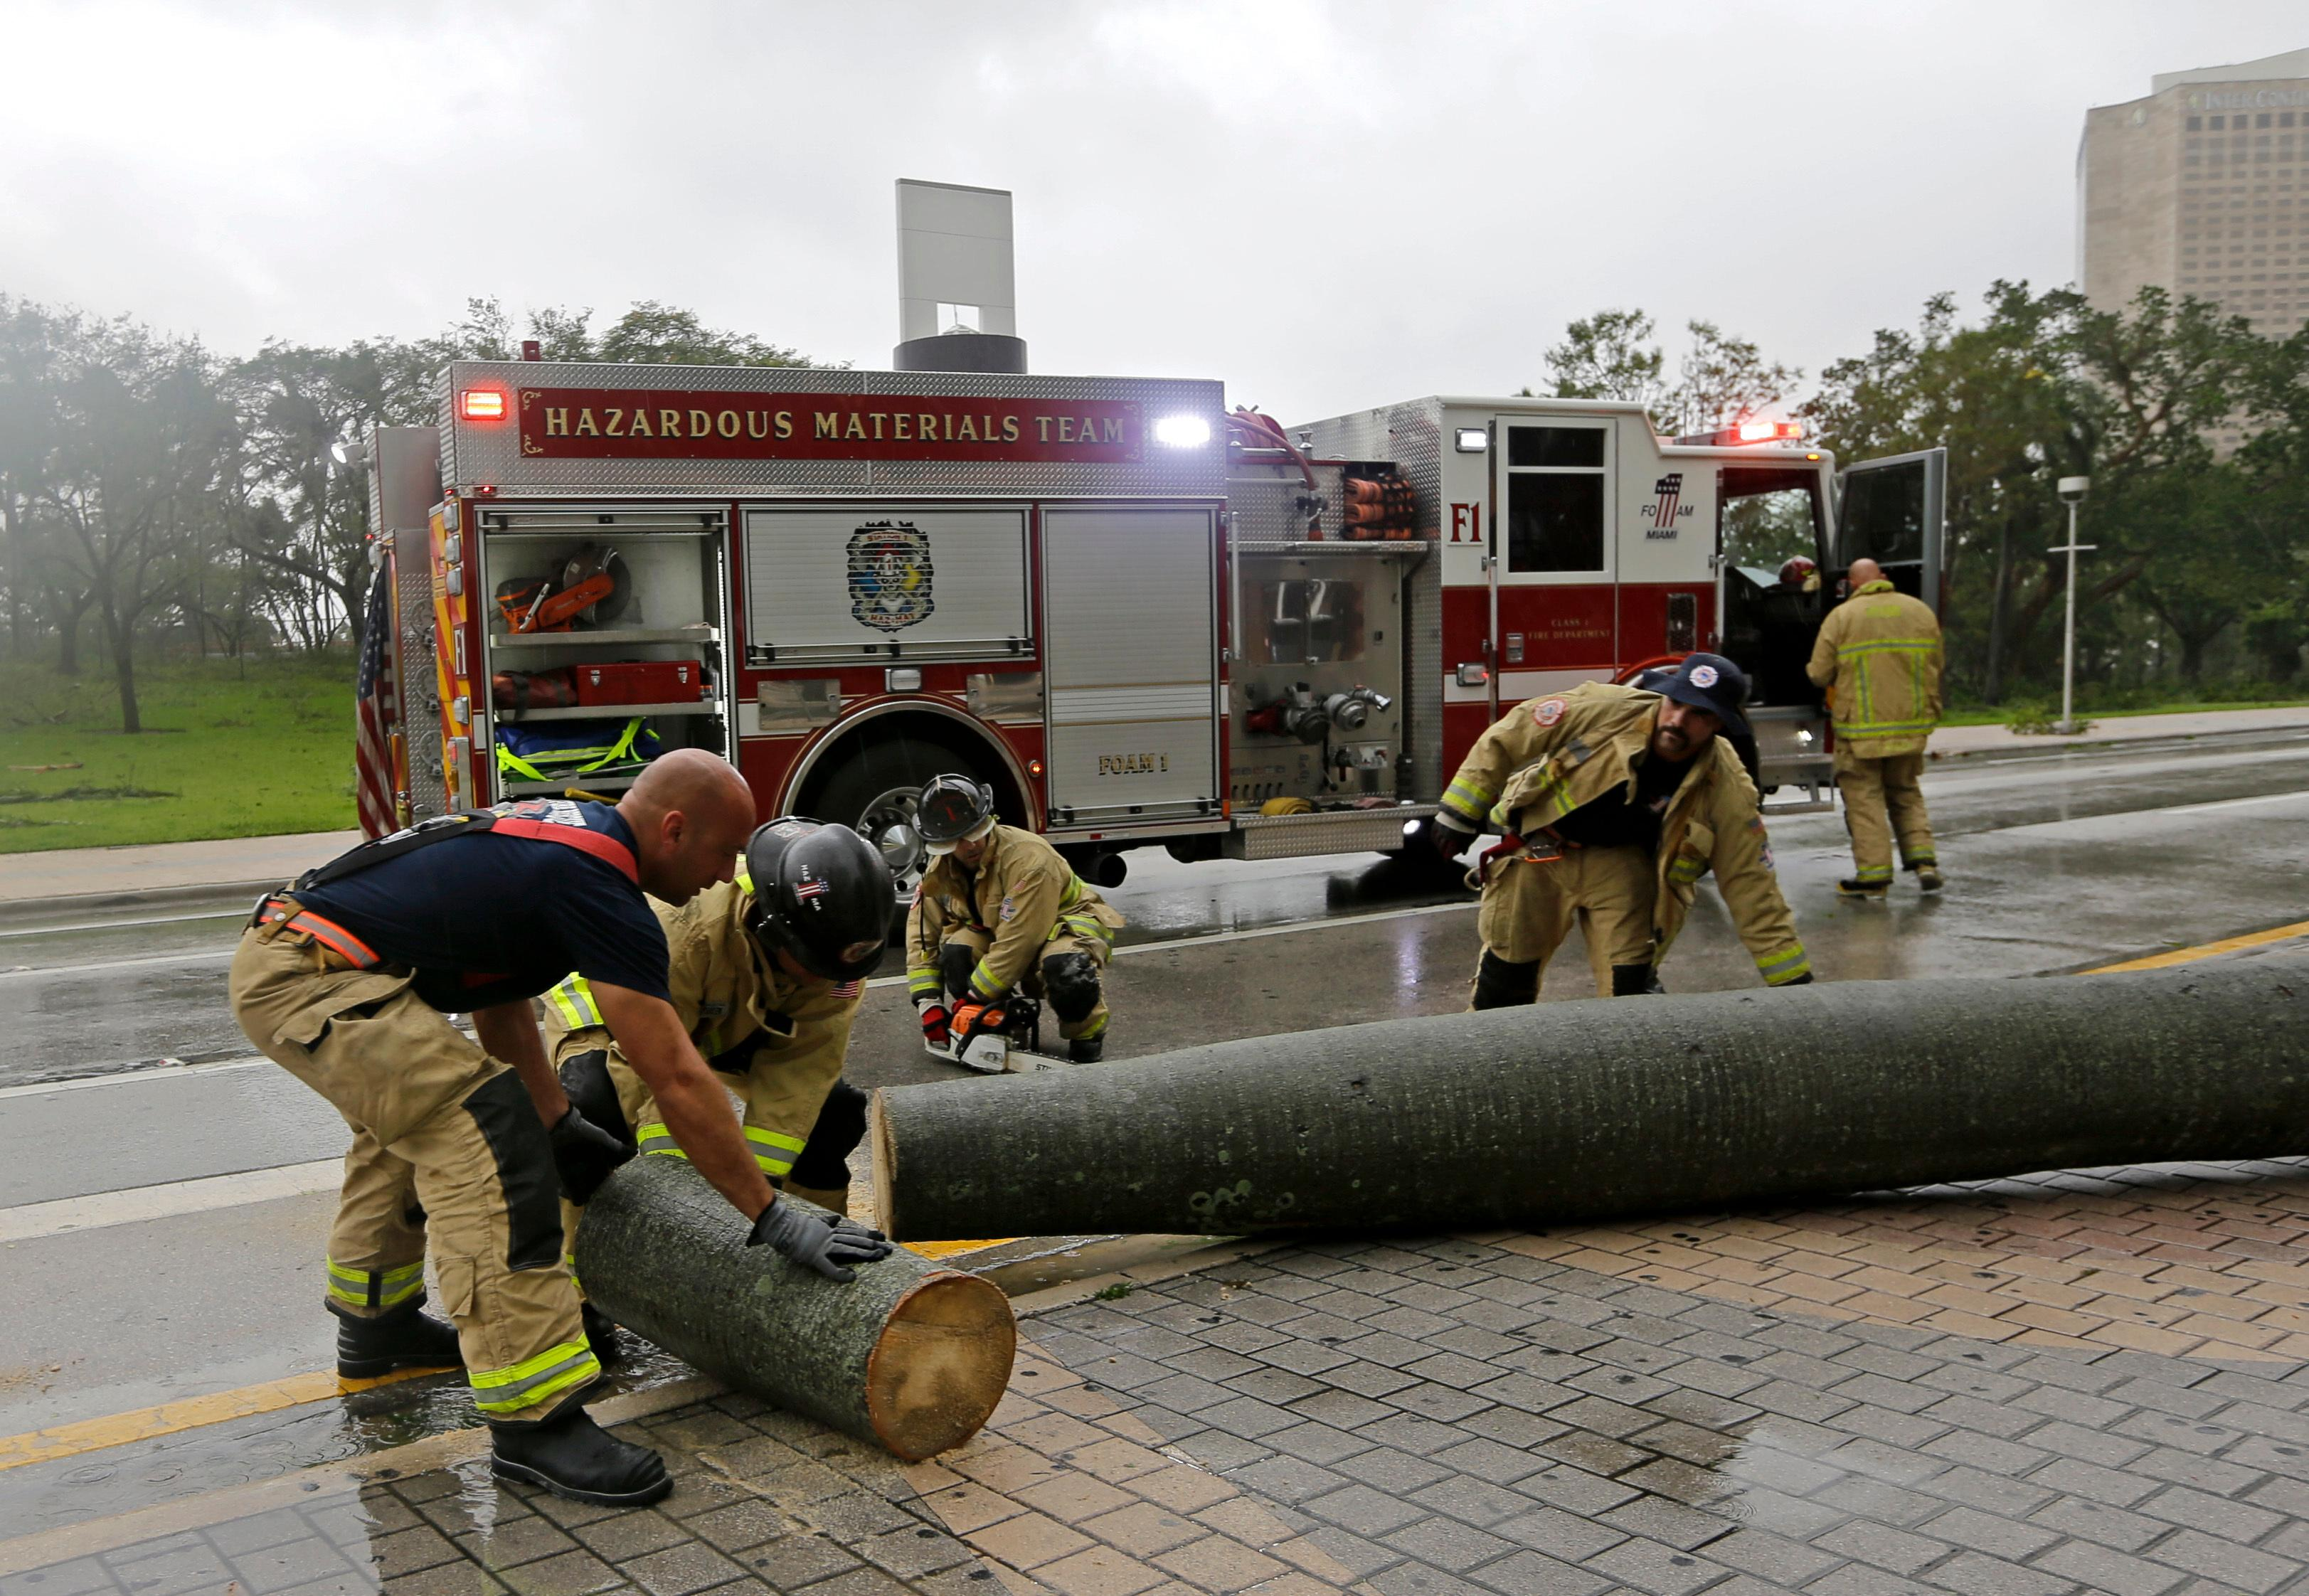 A City of Miami Fire and Rescue crew cuts up a fallen palm tree during Hurricane Irma, as they clear the street, Sunday, Sept. 10, 2017, in downtown Miami. (AP Photo/Alan Diaz)